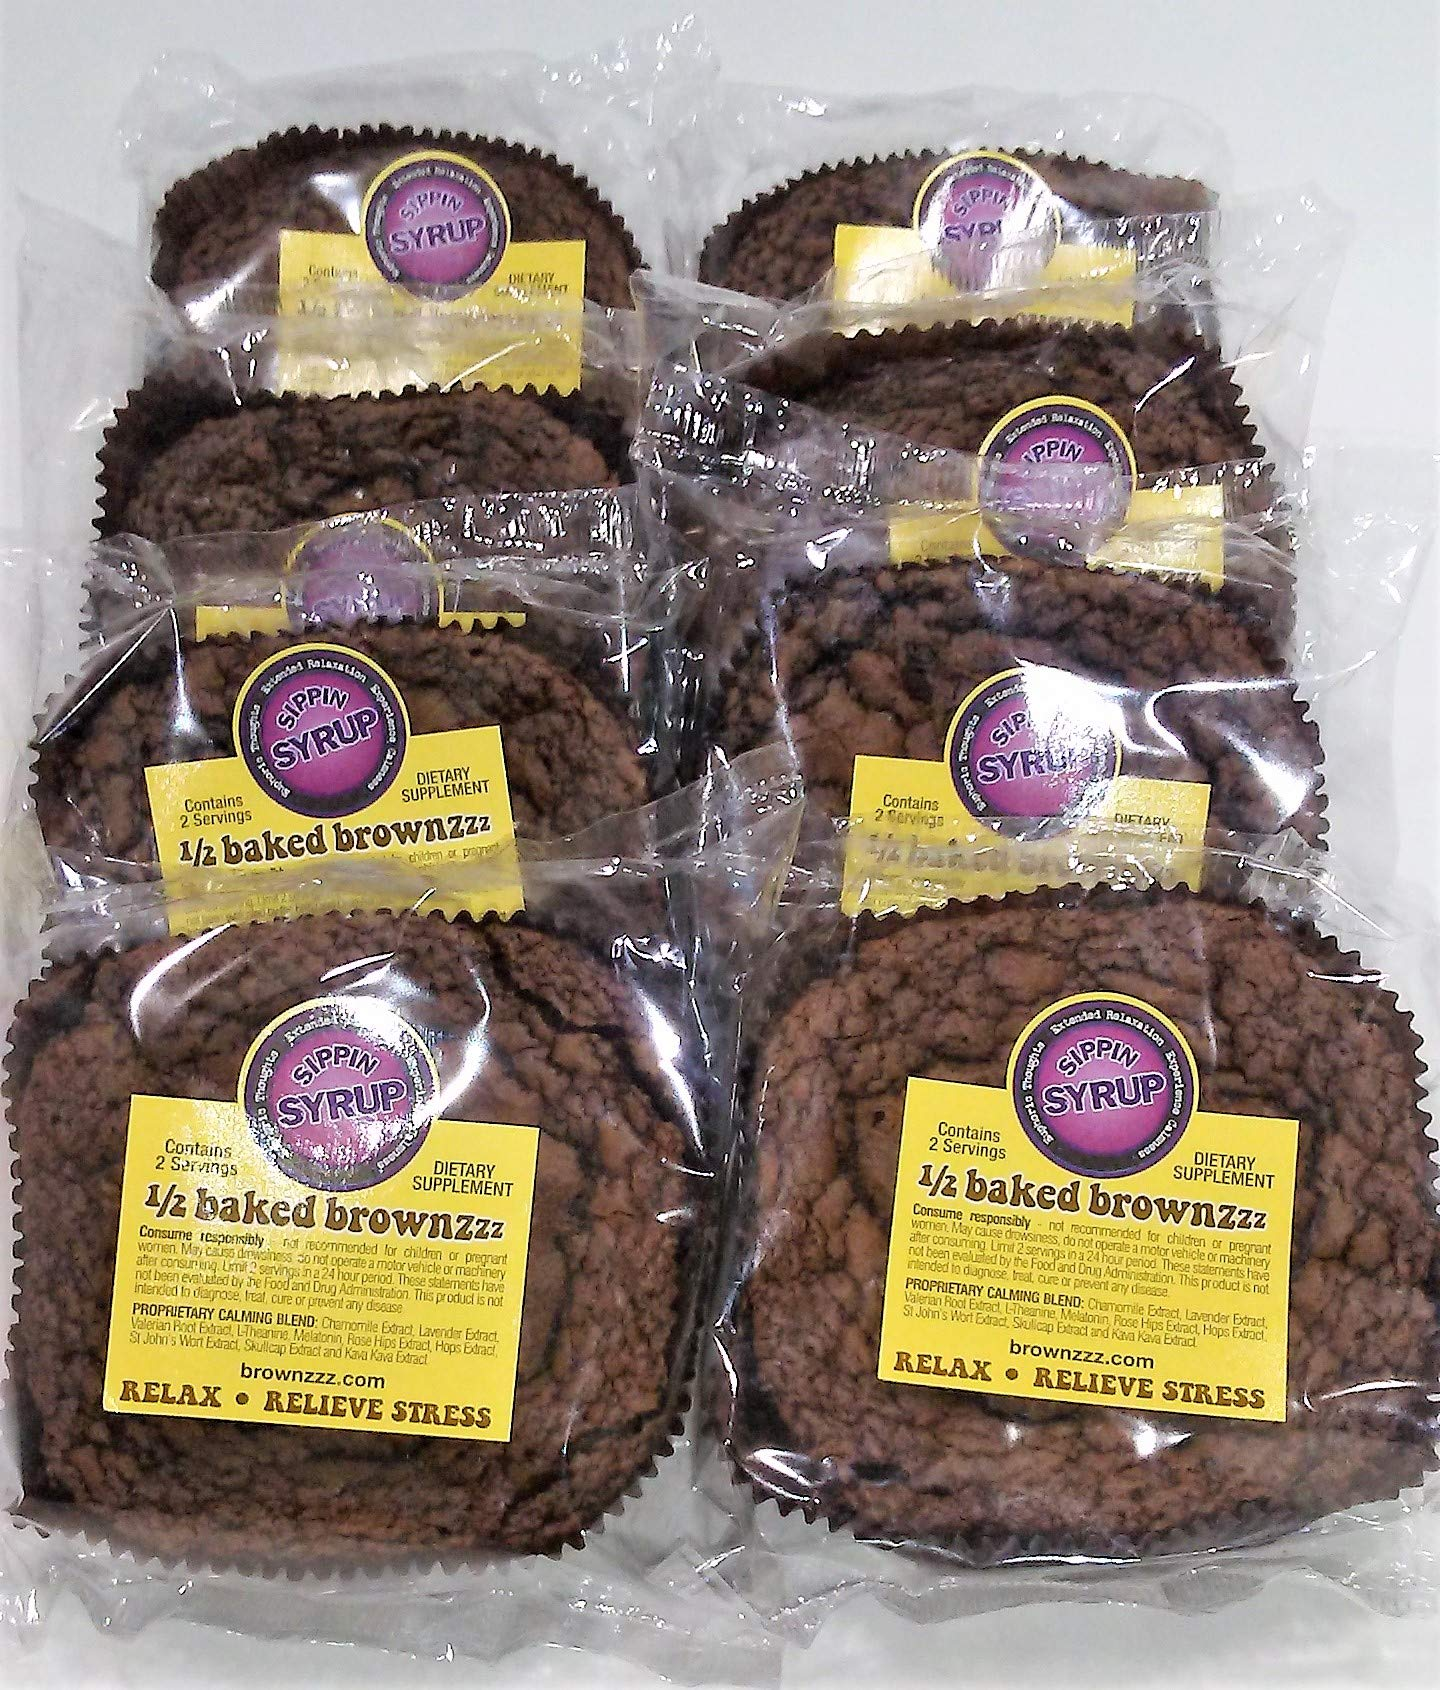 1/2 Baked Brownzzz - Relax and Relieve Stress - Qty. of 8 in Box - Dietary Supplement with Chamomile, Lavender, Valerian, St. John's Wort and More (8)